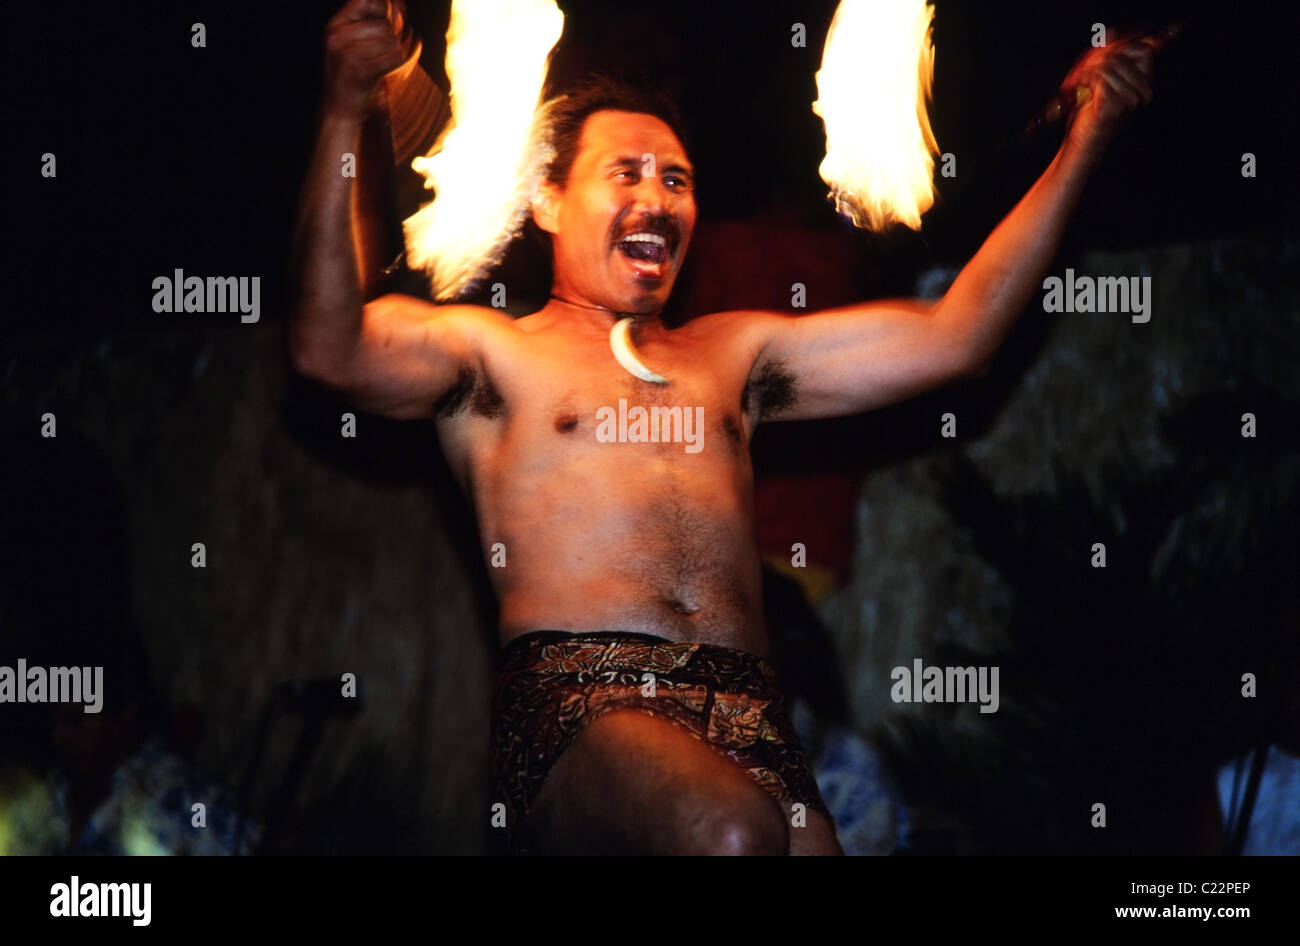 Man with flaming torches Hawaii Hula performance - Stock Image